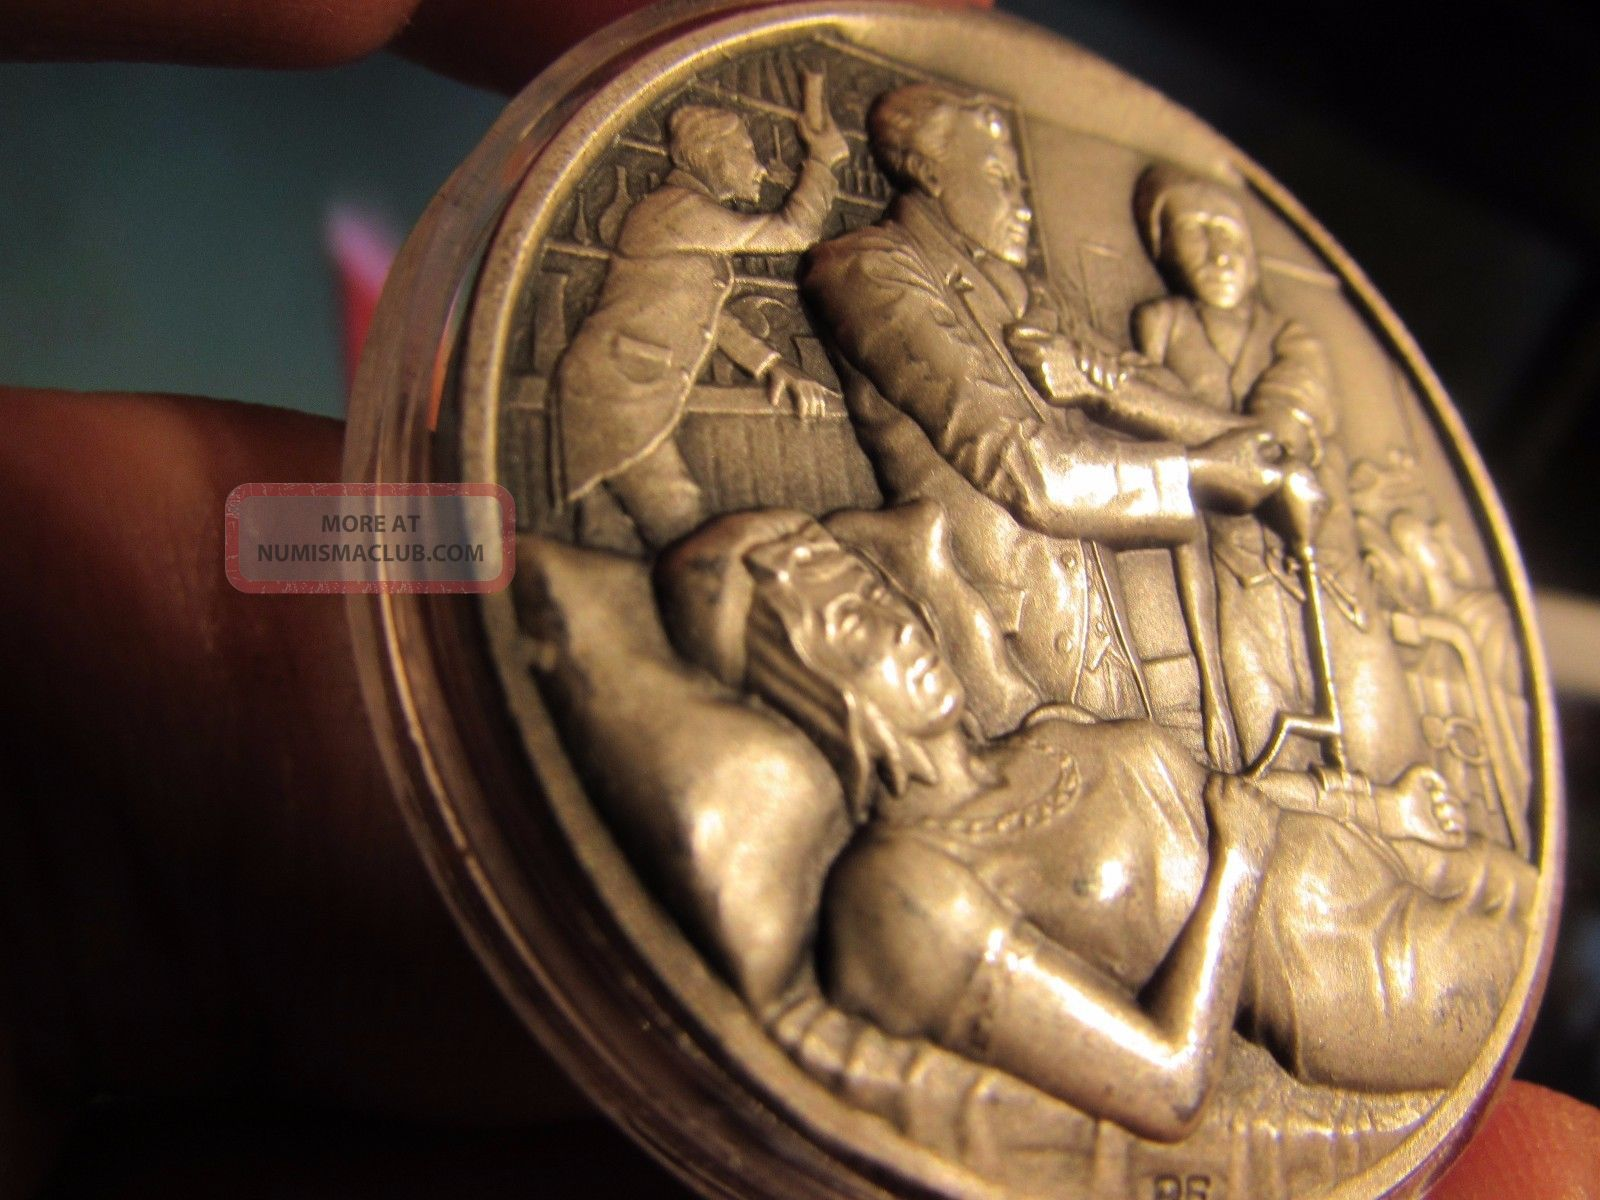 Rare 55 Gr.  999 Silver High Relief Medallic Art Co,  History Of Surgery,  700 Only Exonumia photo